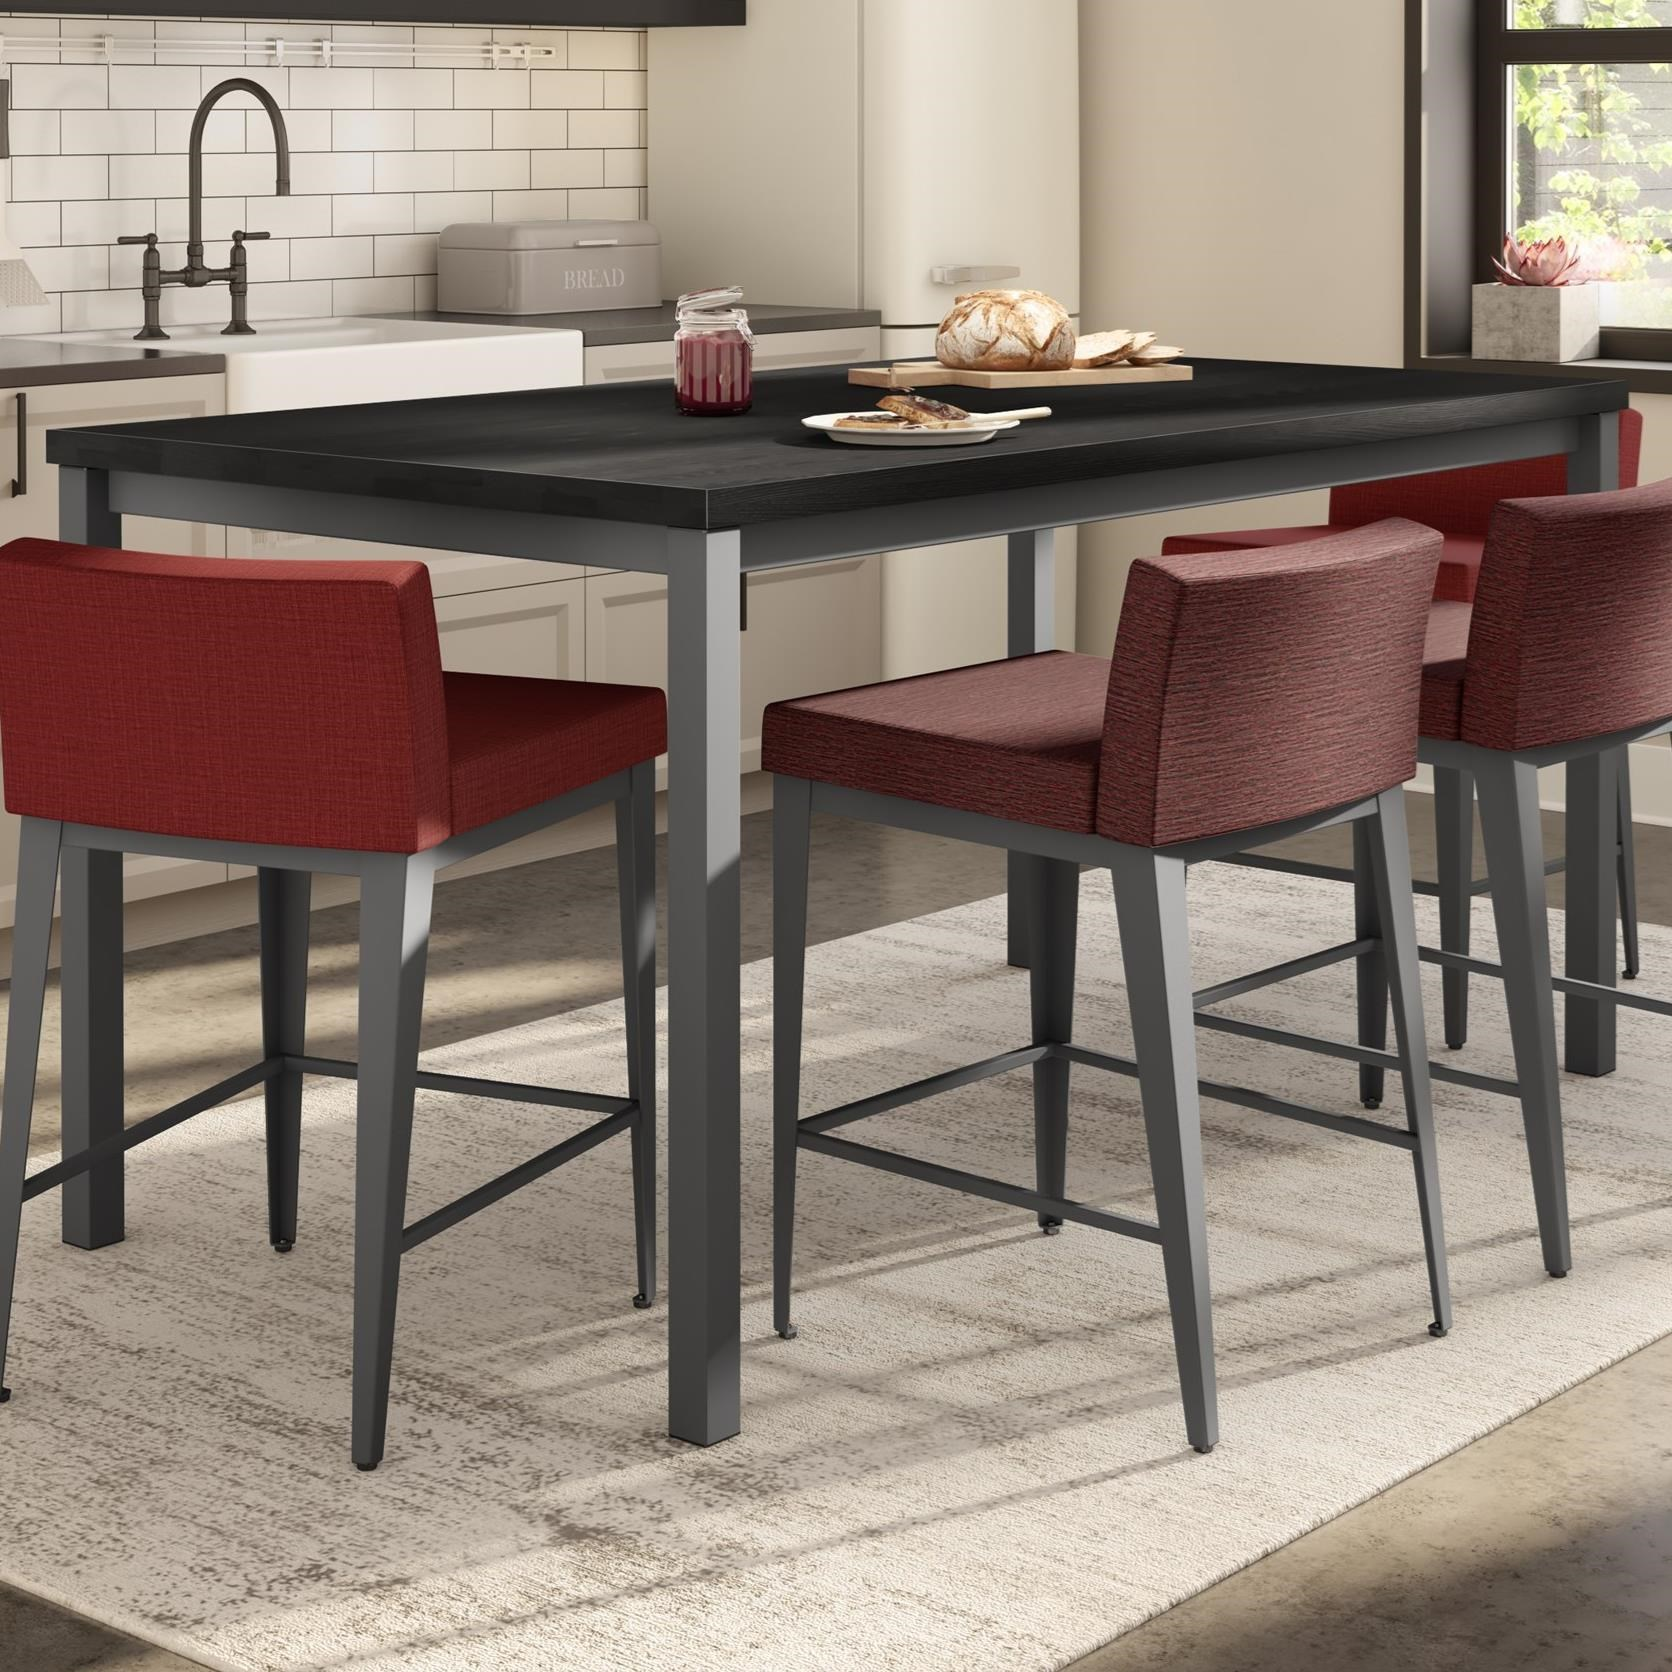 Boudoir Bennington Counter Table with Wood Top by Amisco at Jordan's Home Furnishings